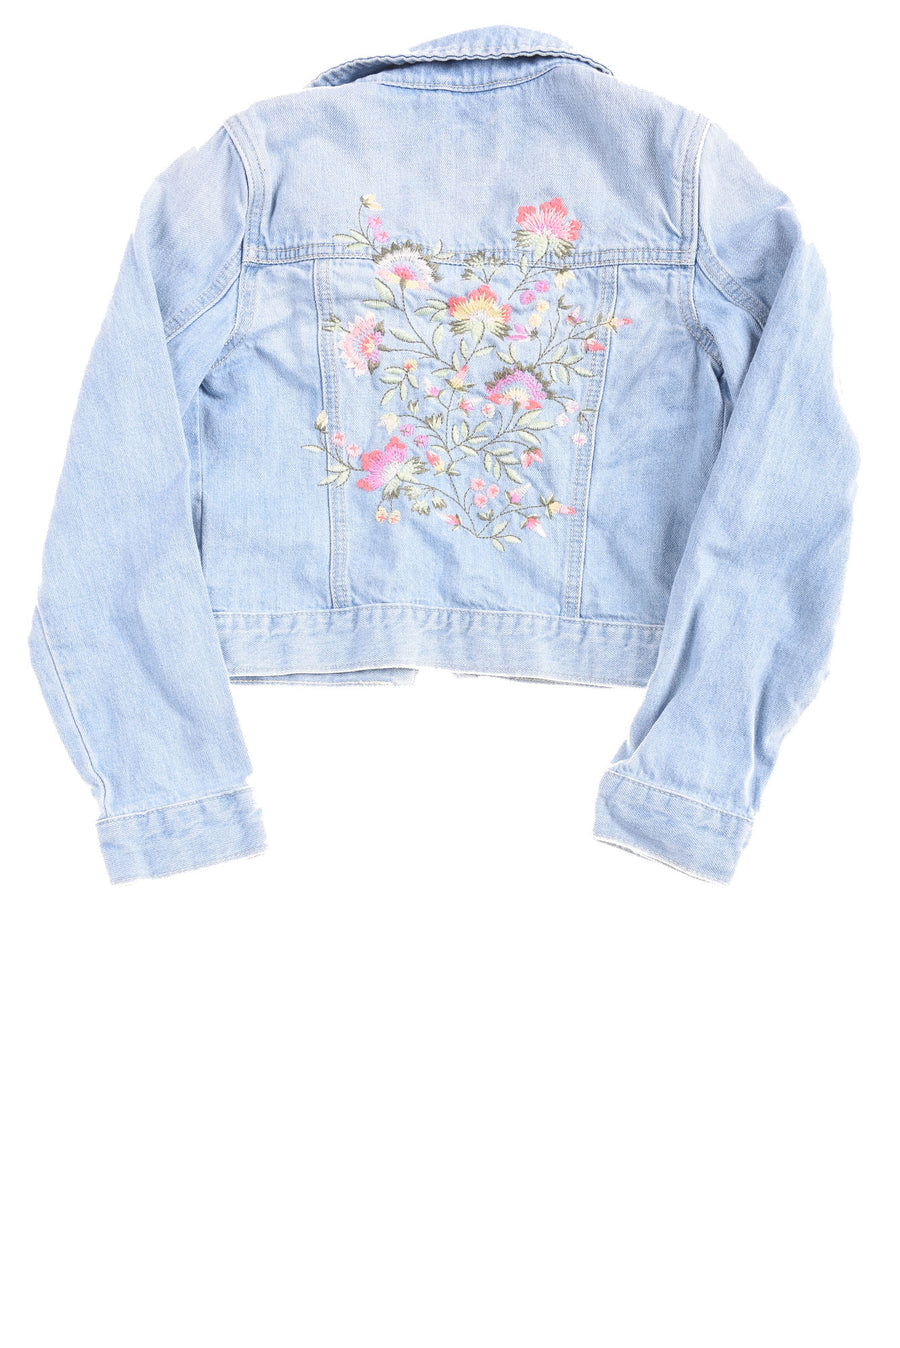 USED Gap Kids Girl's Jacket Medium Blue